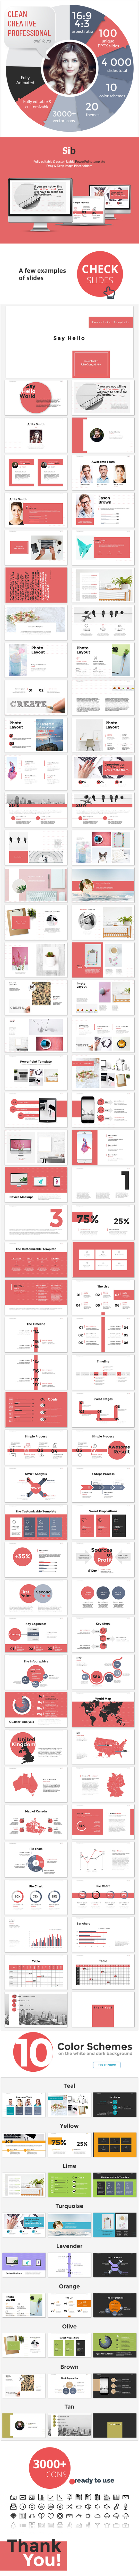 Sib PowerPoint Layouts for Project - Creative PowerPoint Templates